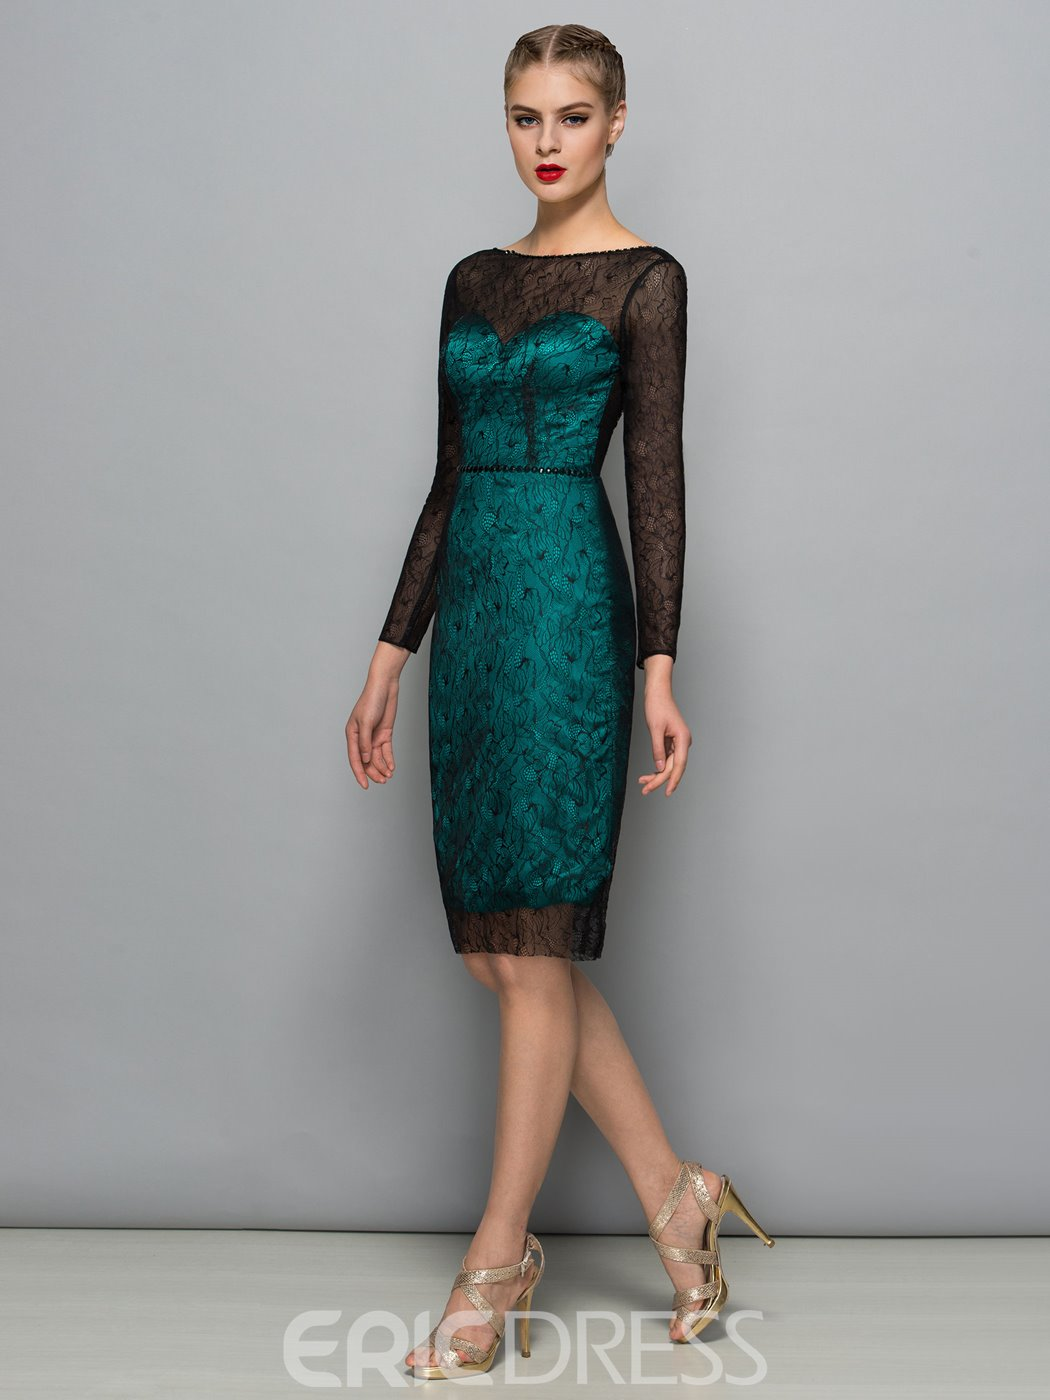 Ericdress Long Sleeve Deep Back Lace Knee Length Cocktail Dress